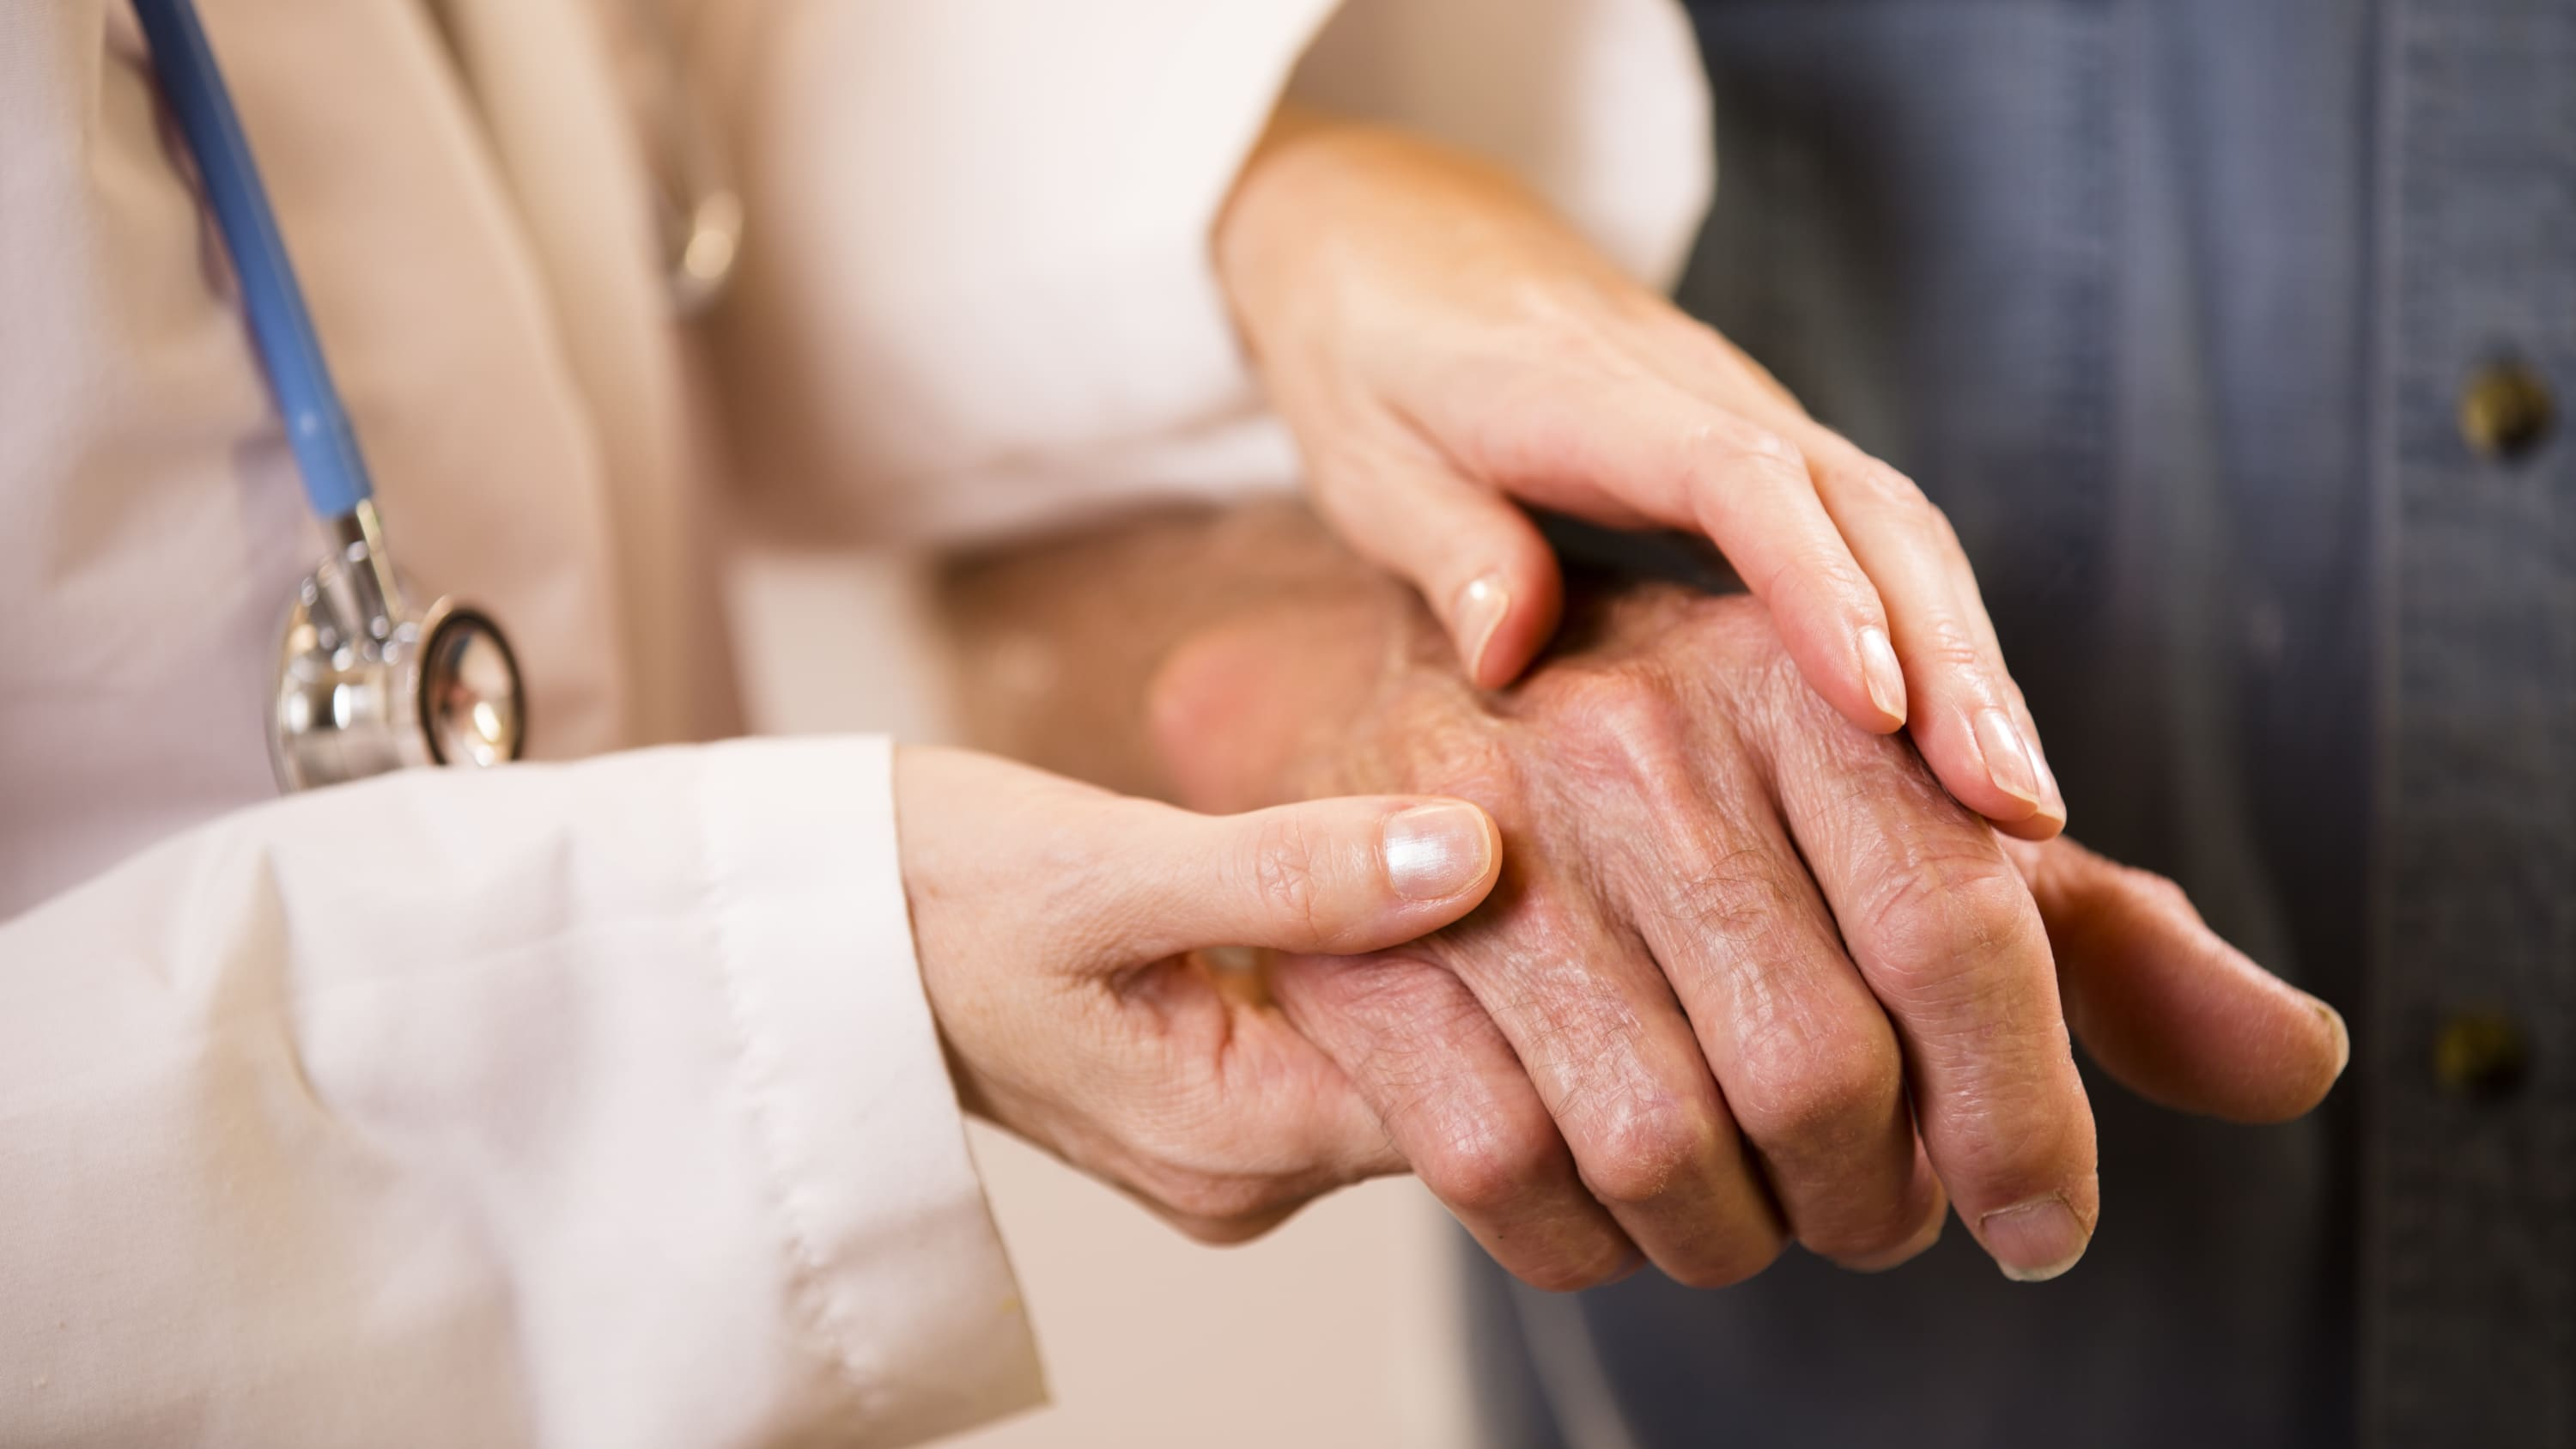 A woman touches a man's hands, someone who possibly has rheumatoid arthritis